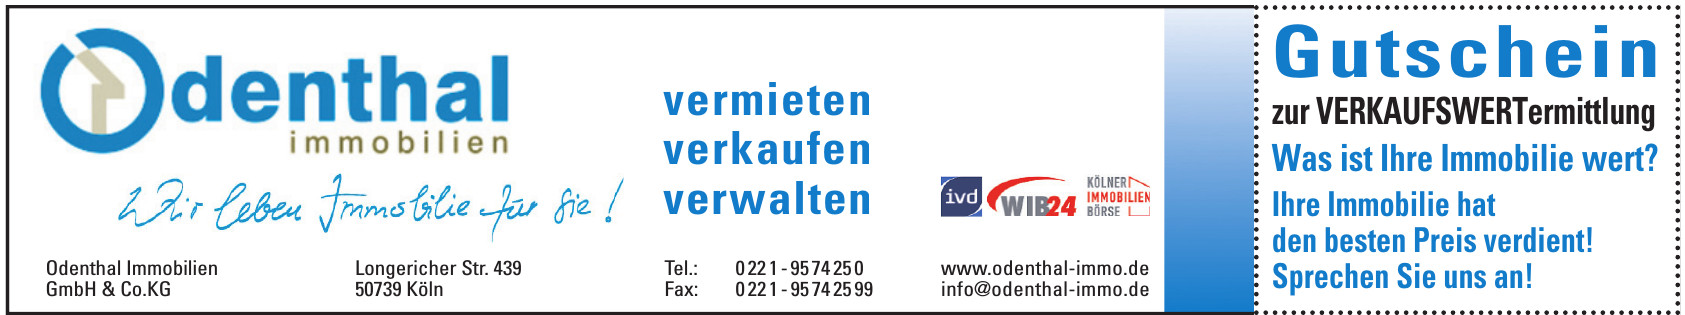 Odenthal Immobilien GmbH & Co.KG